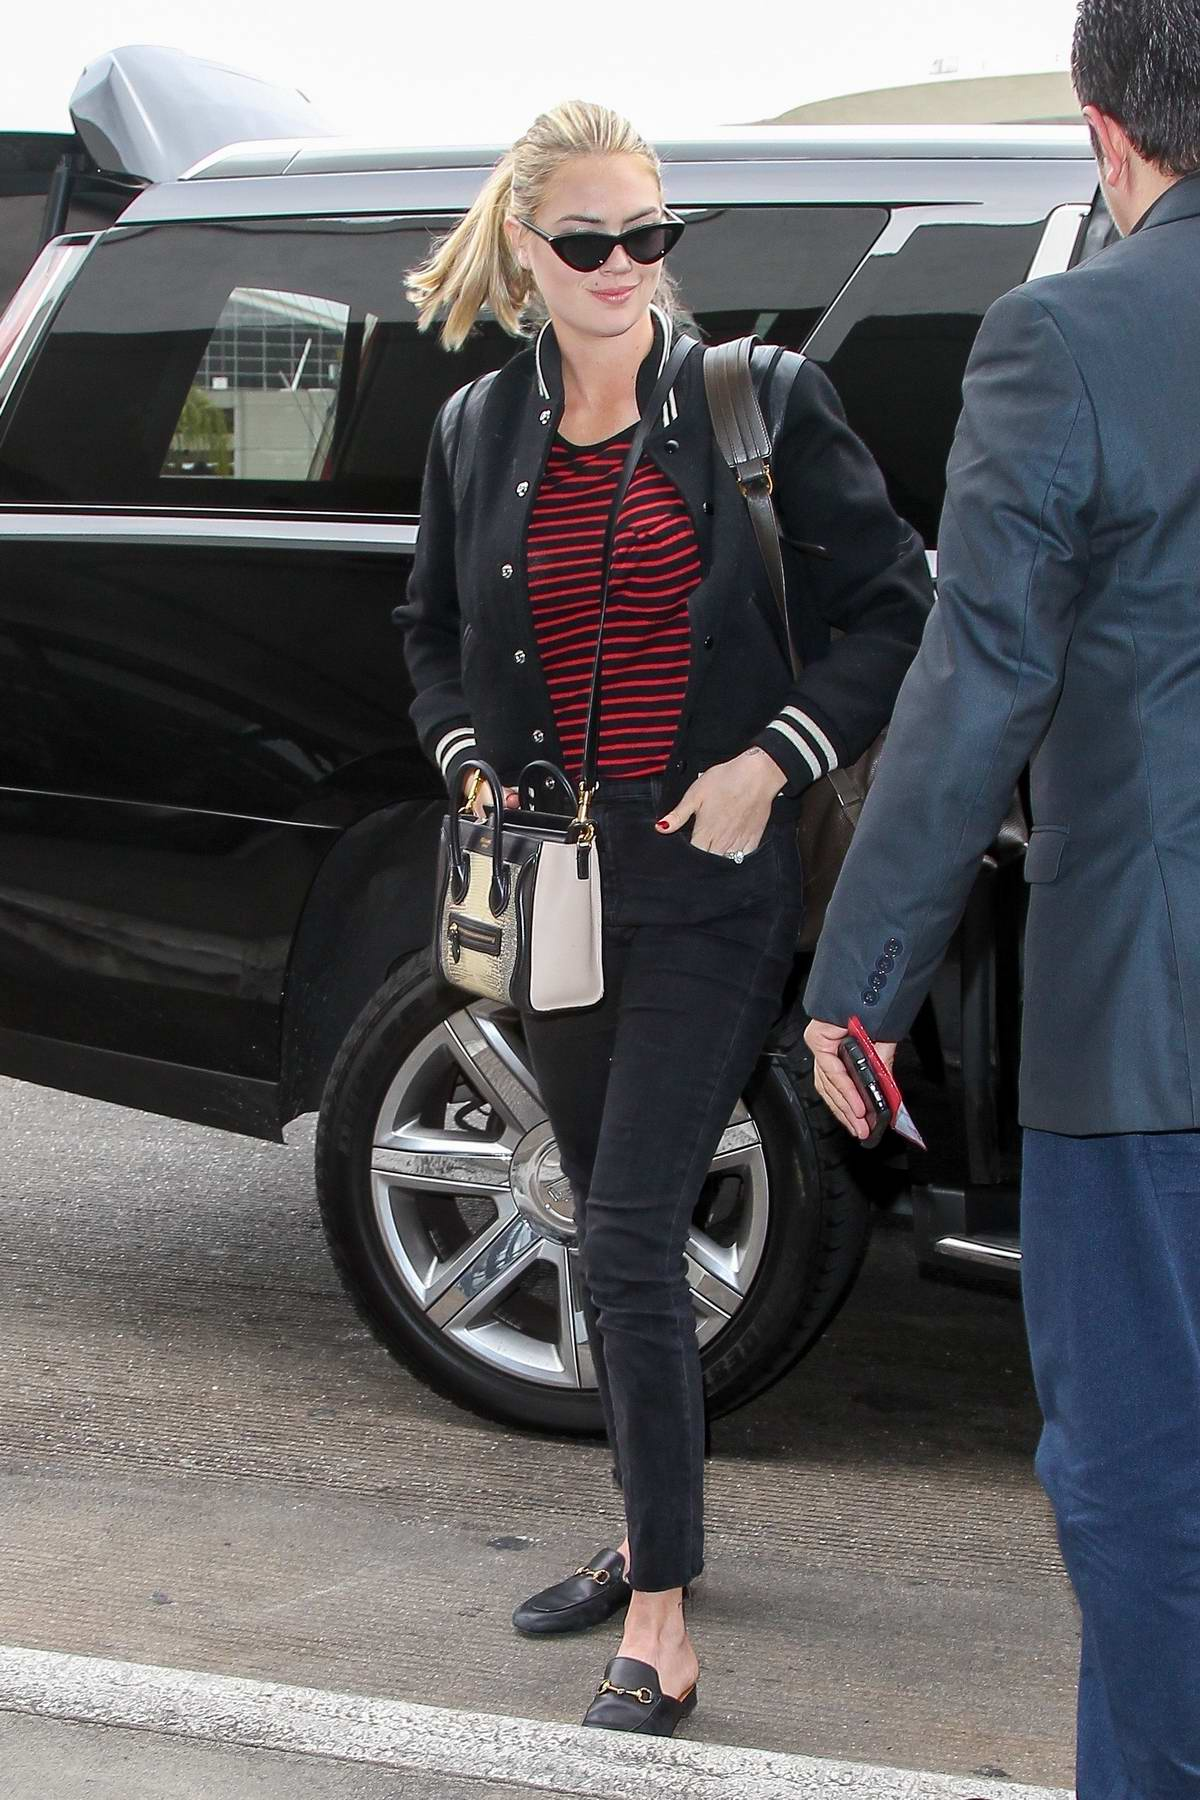 Kate Upton look stylish in a varsity jacket as she arrives to catch a flight at LAX airport, Los Angeles